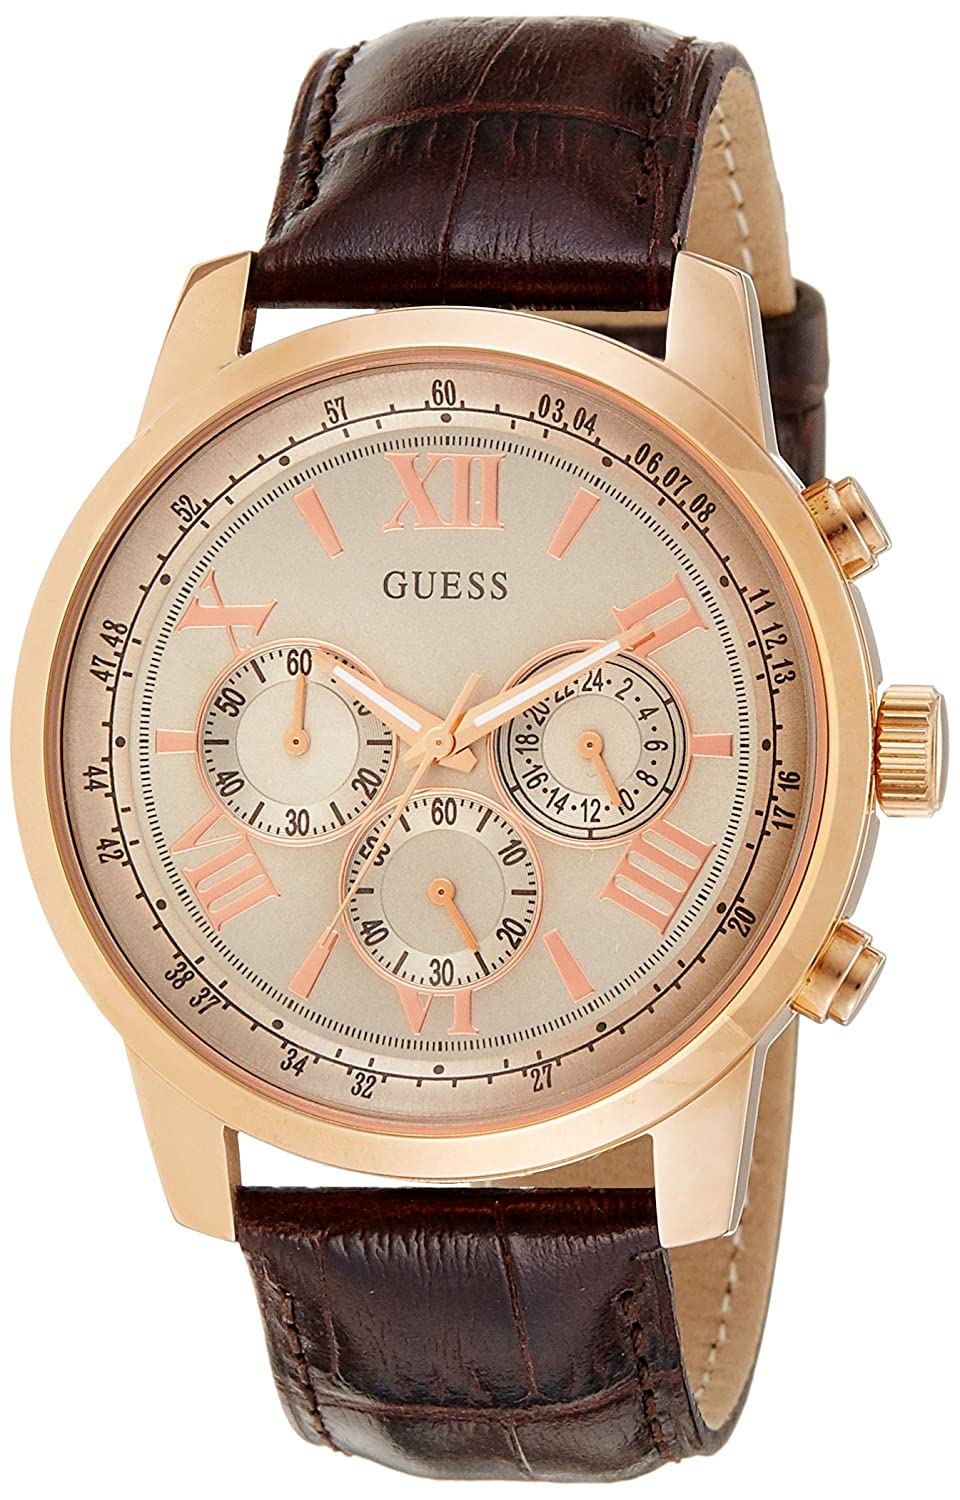 Amazon.com: GENUINE GUESS Watch CLASSIC Male Chronograph - w0380g4: Watches